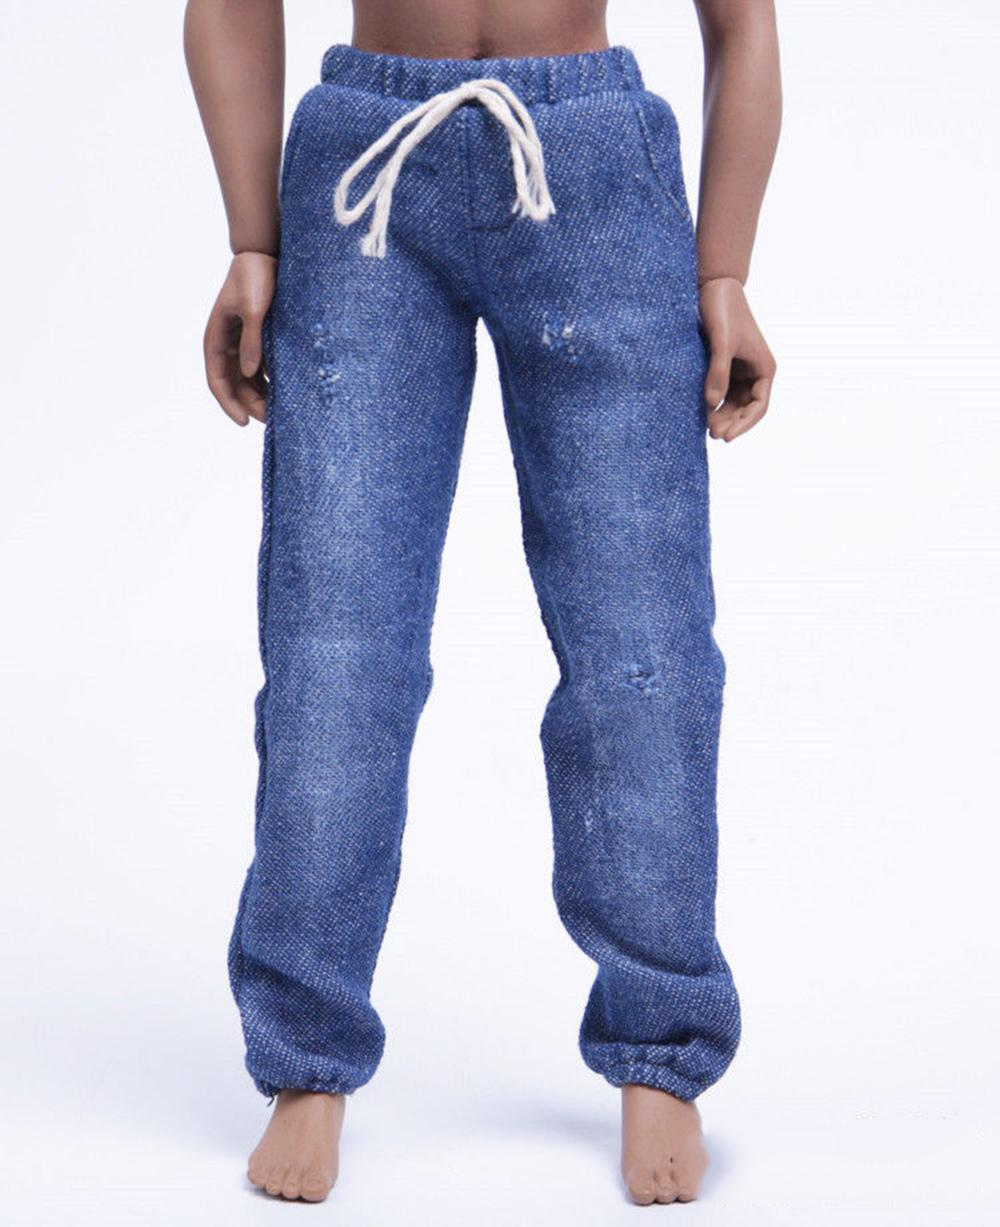 1/6 Scale Dark Blue Casual Pants Leisure Jeans With Hole Trousers Cloth for 12 inches Coomodel Body Figure